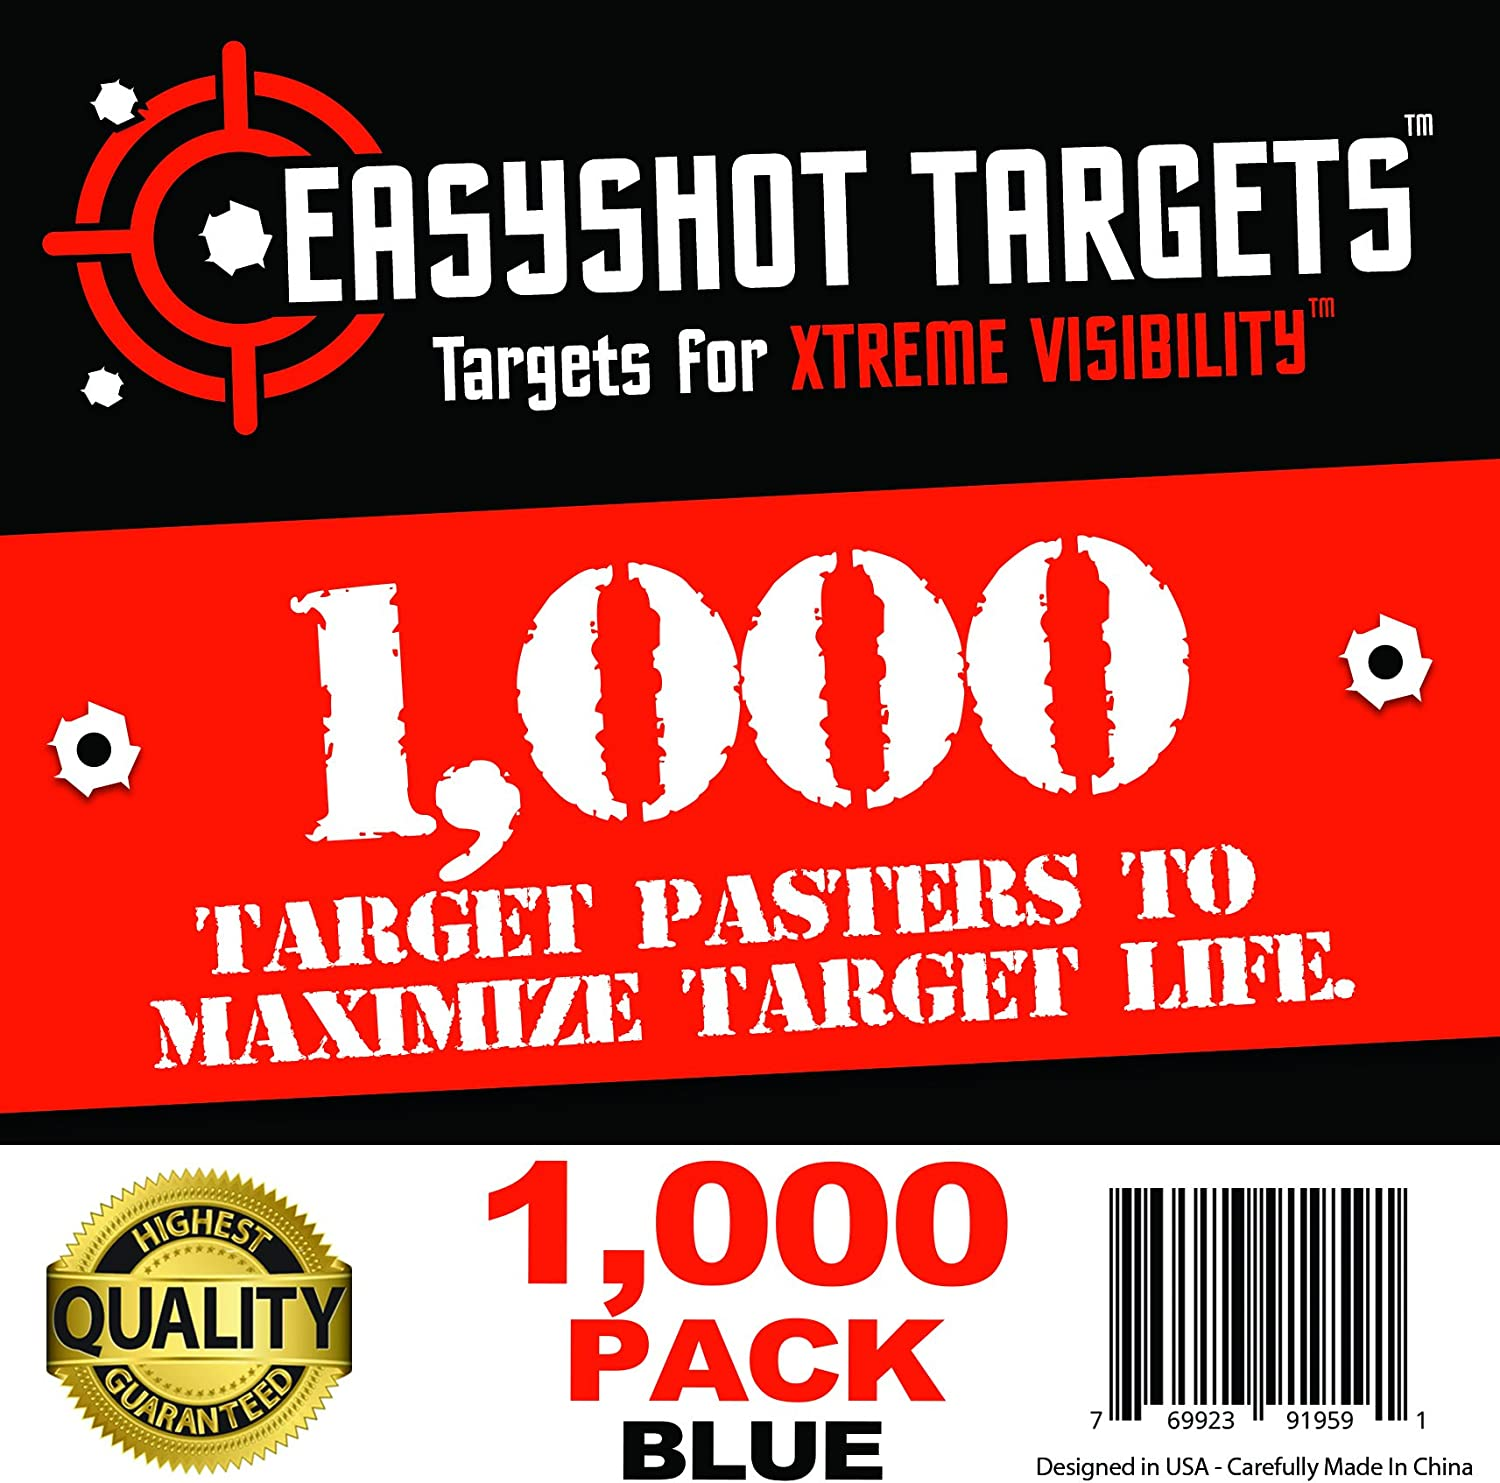 EasyShot Shooting Target Pasters 1,000-Pack (Blue) Premium Quality Target Repair Stickers to Maximize Target Life : Sports & Outdoors